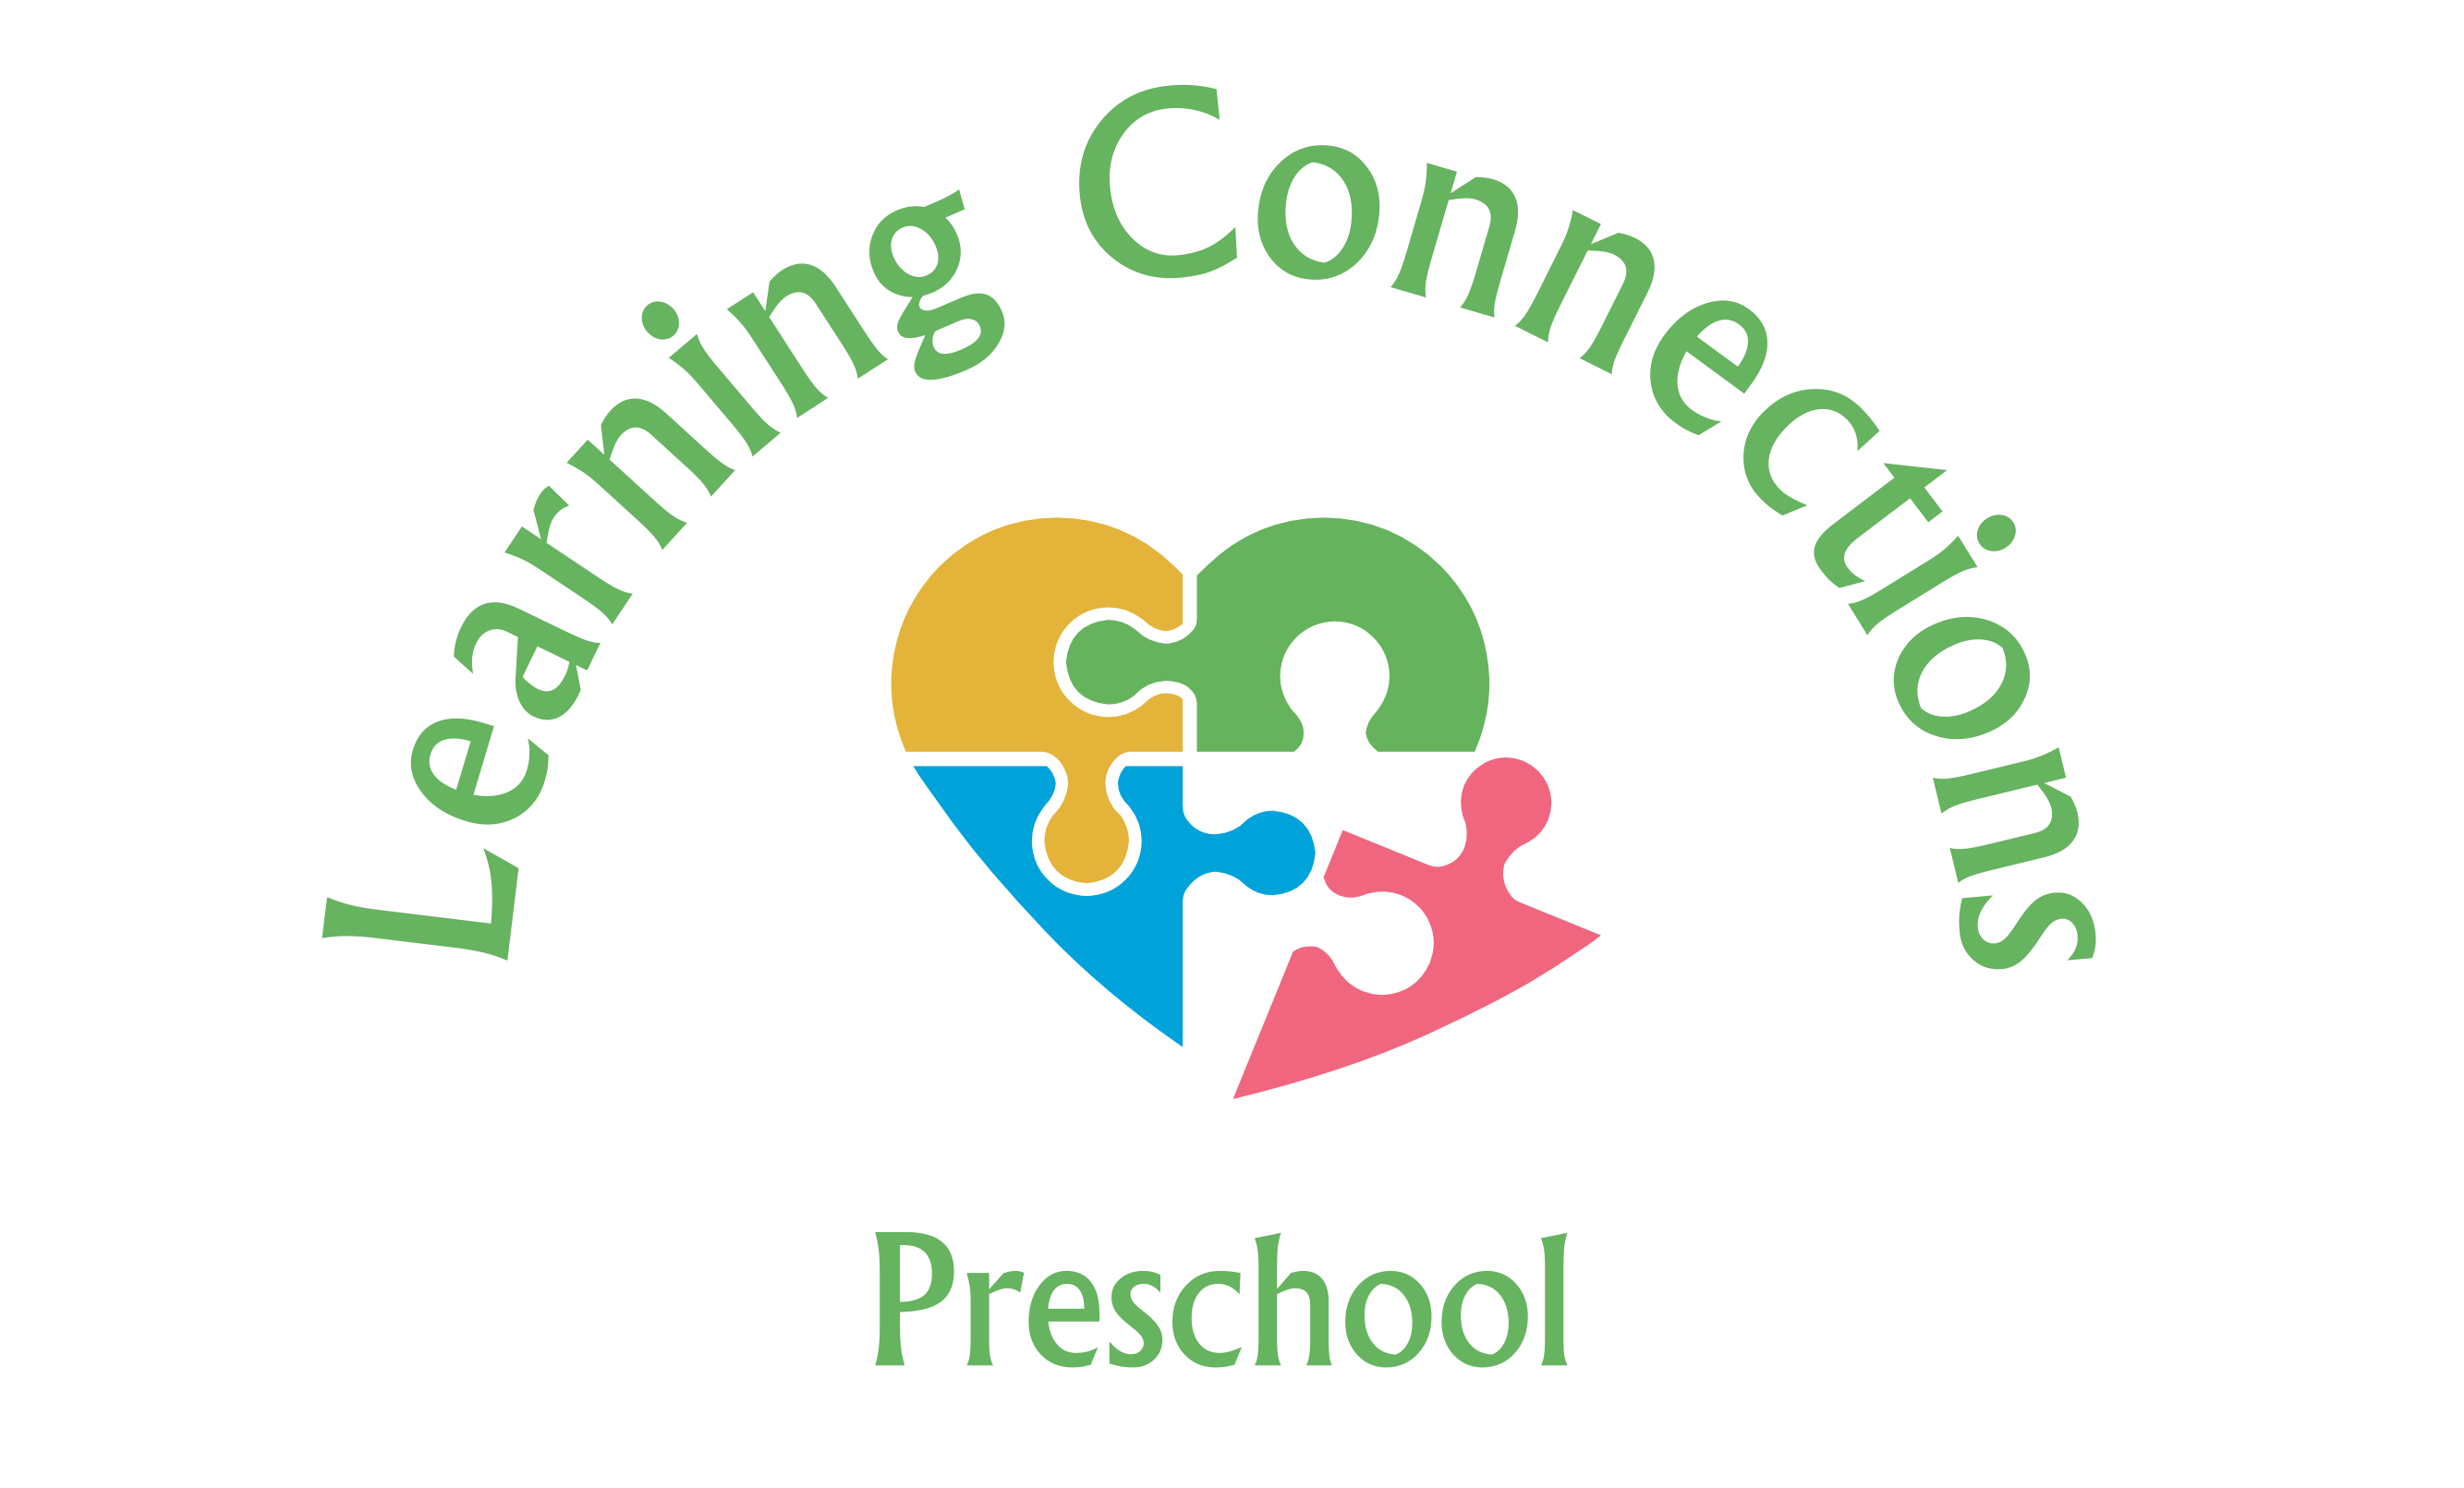 LEARNING CONNECTIONS PRESCHOOL